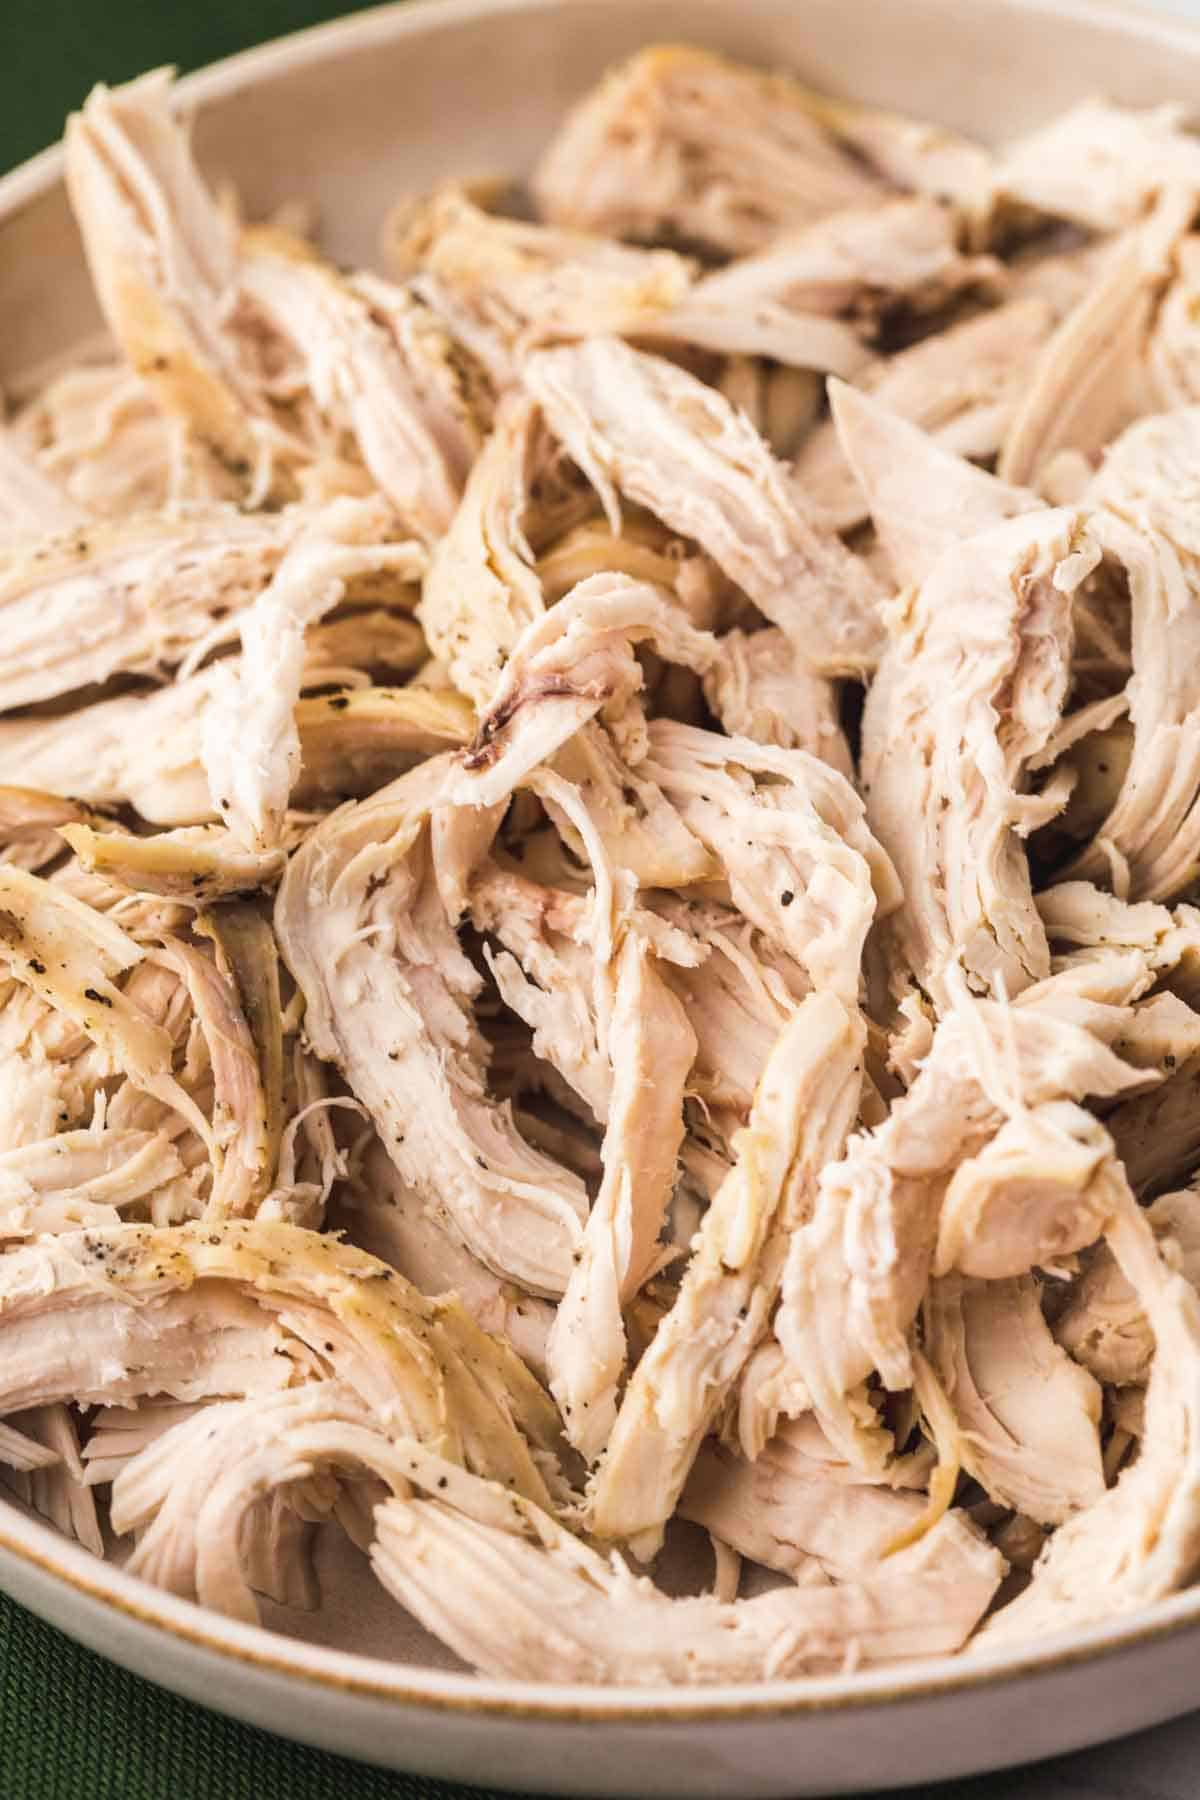 Shredded chicken on a white plate